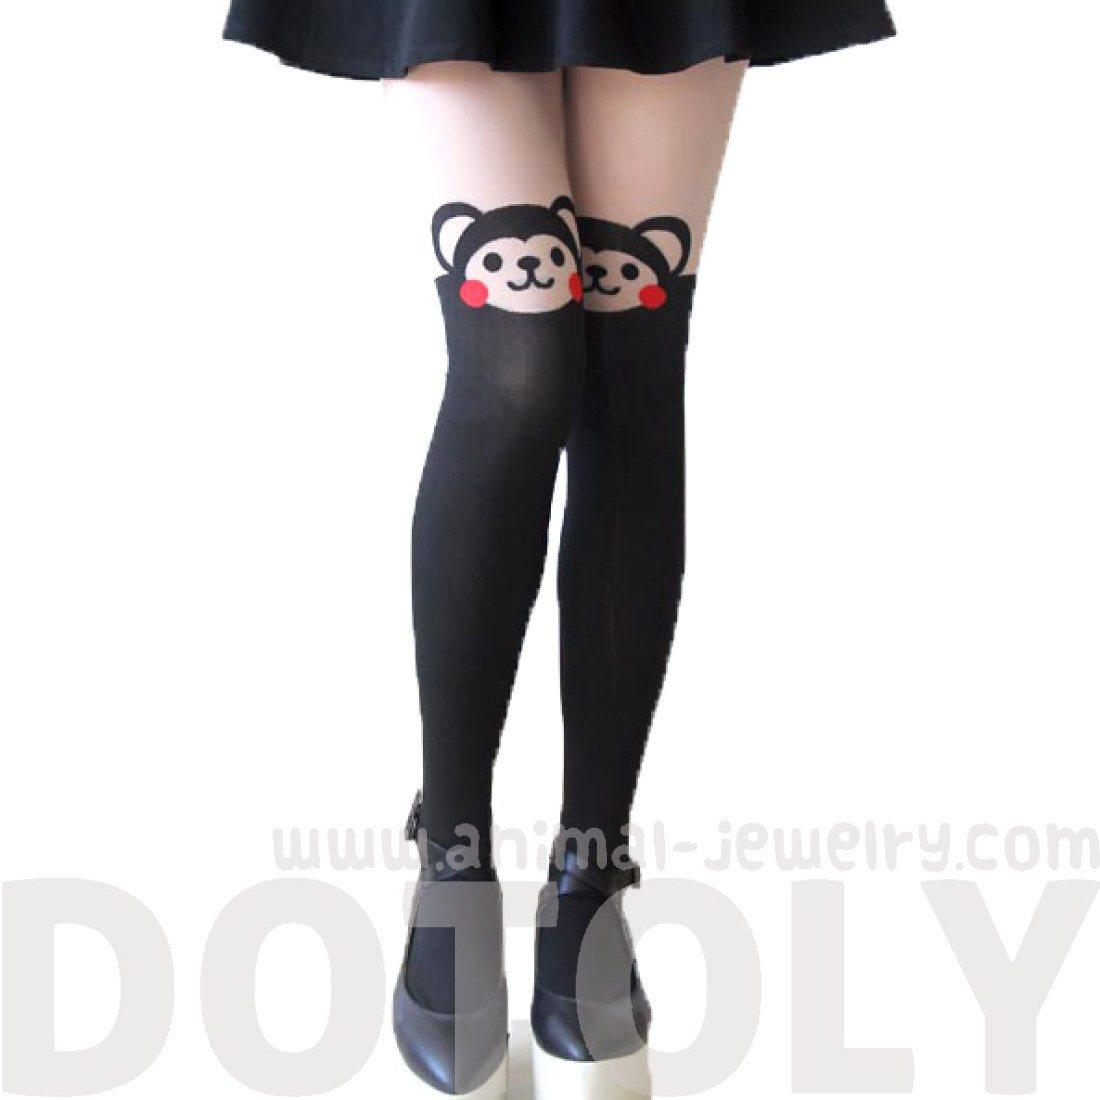 Adorable Monkey Bear Print Mock Thigh High Pantyhose Tights in Black